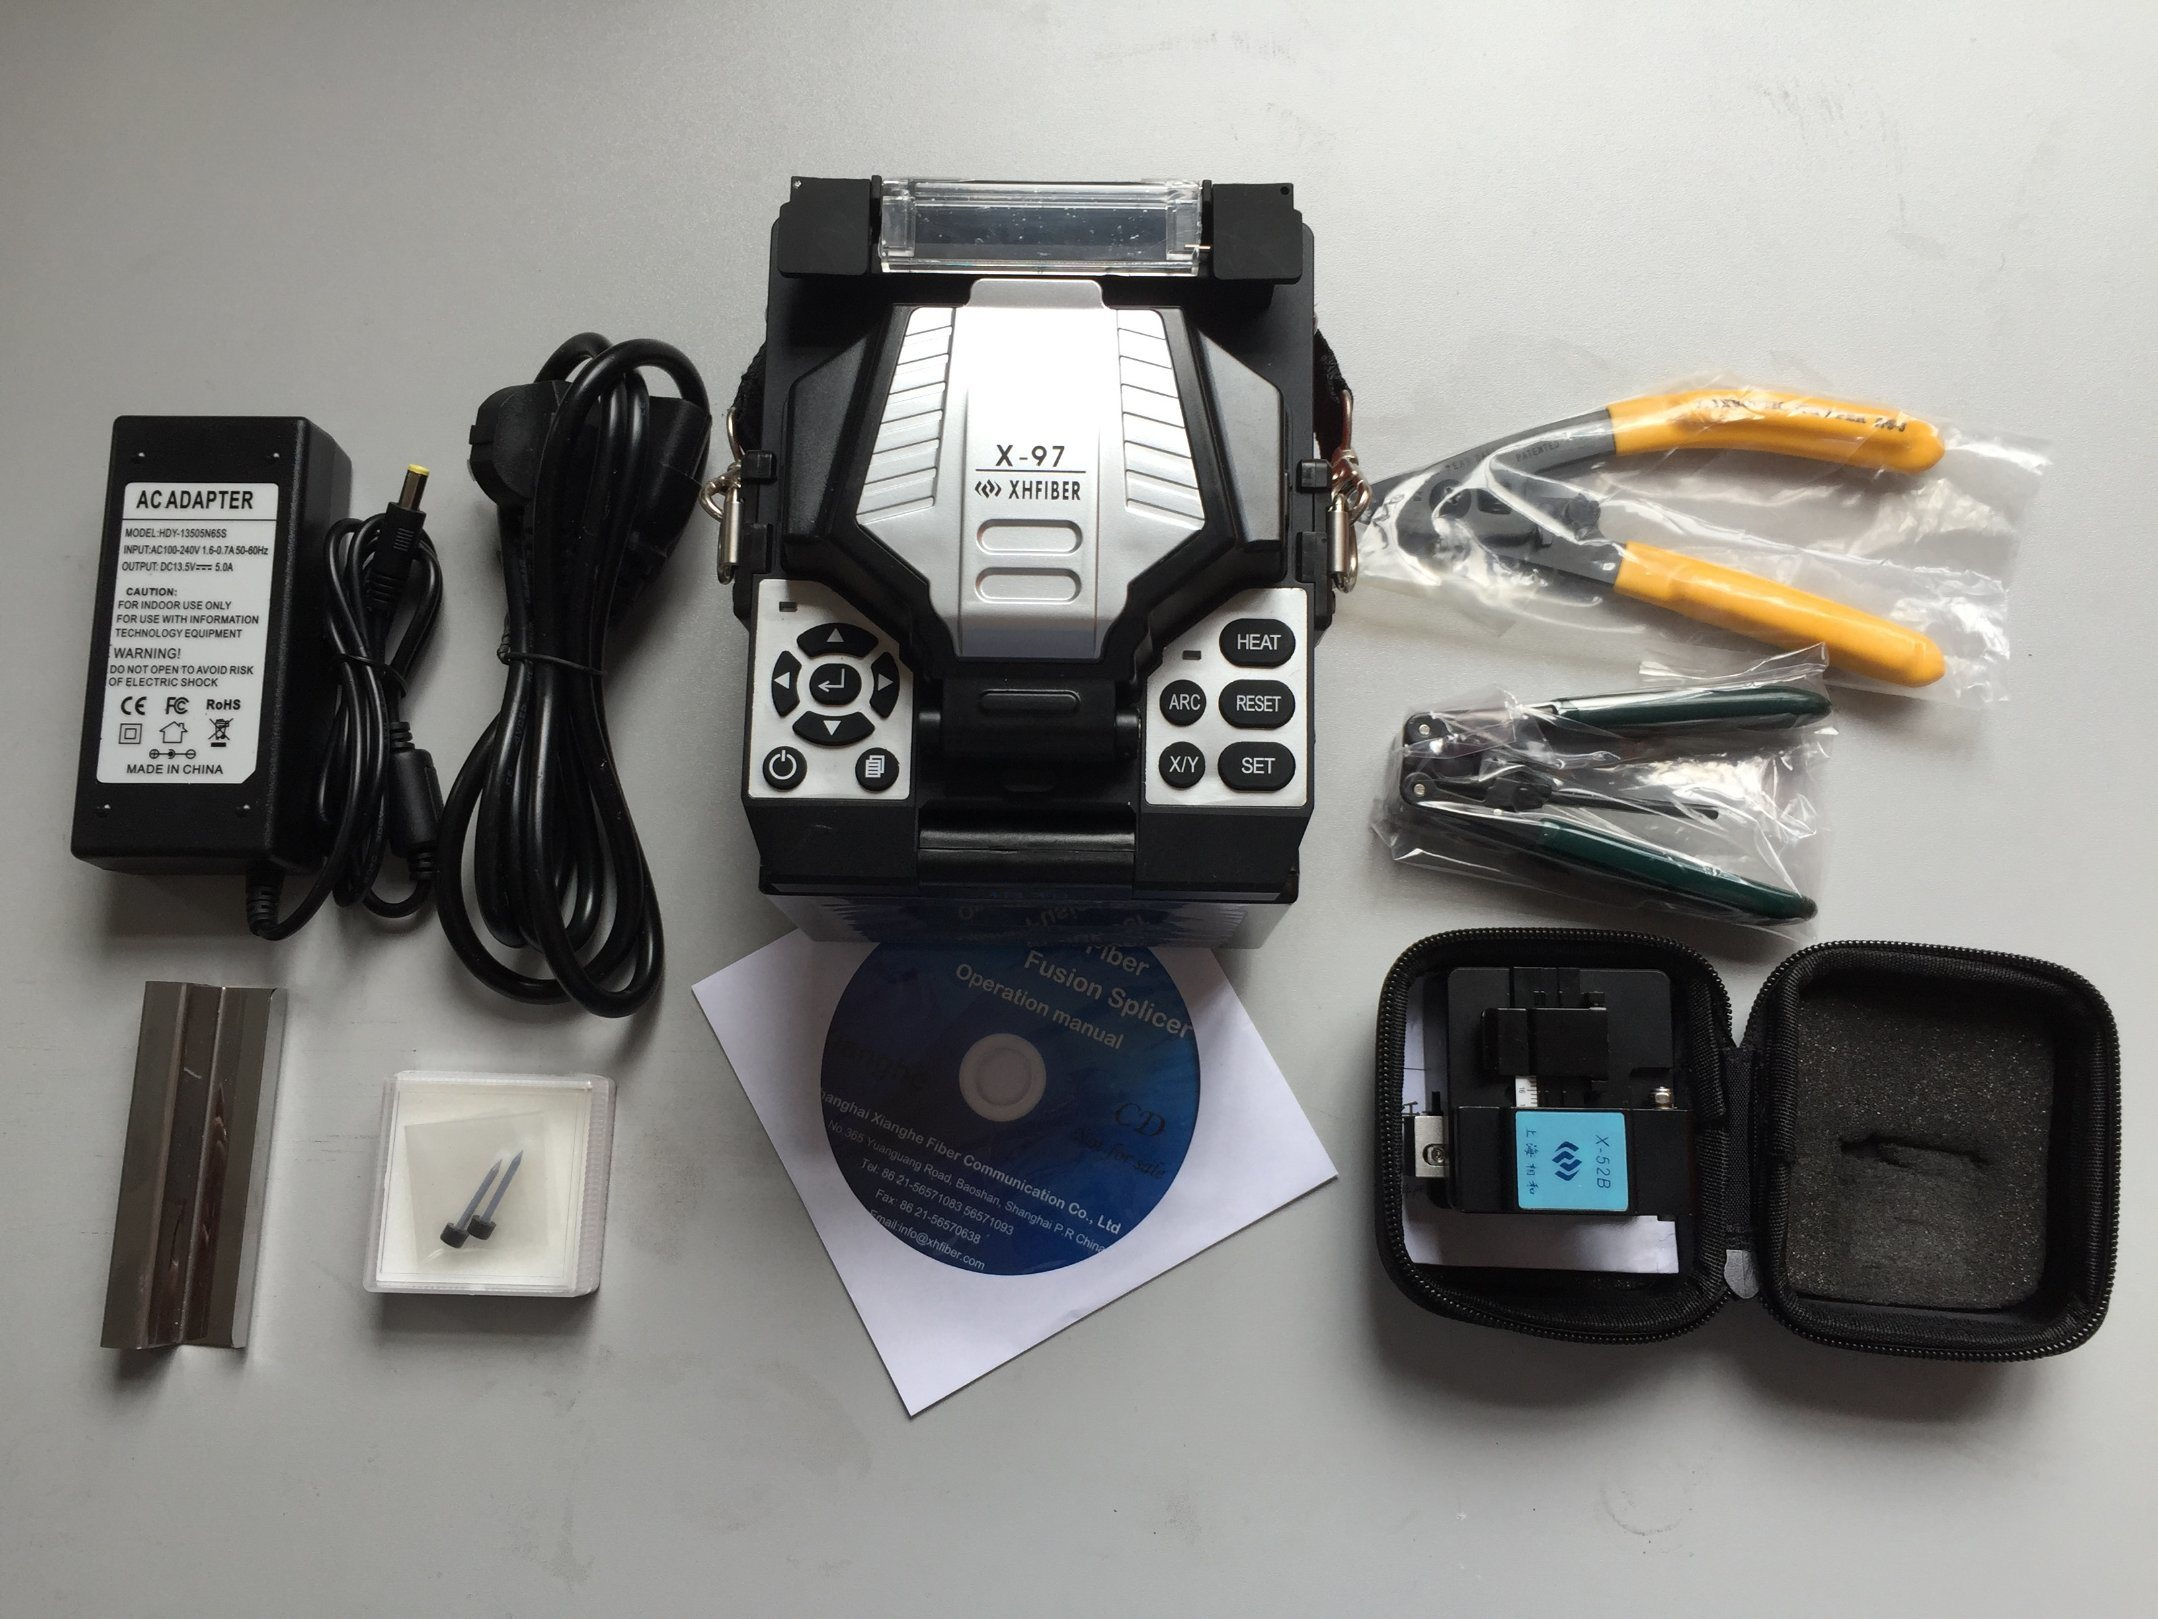 Shinho X-97 Fibre Optic Fusion Splicer